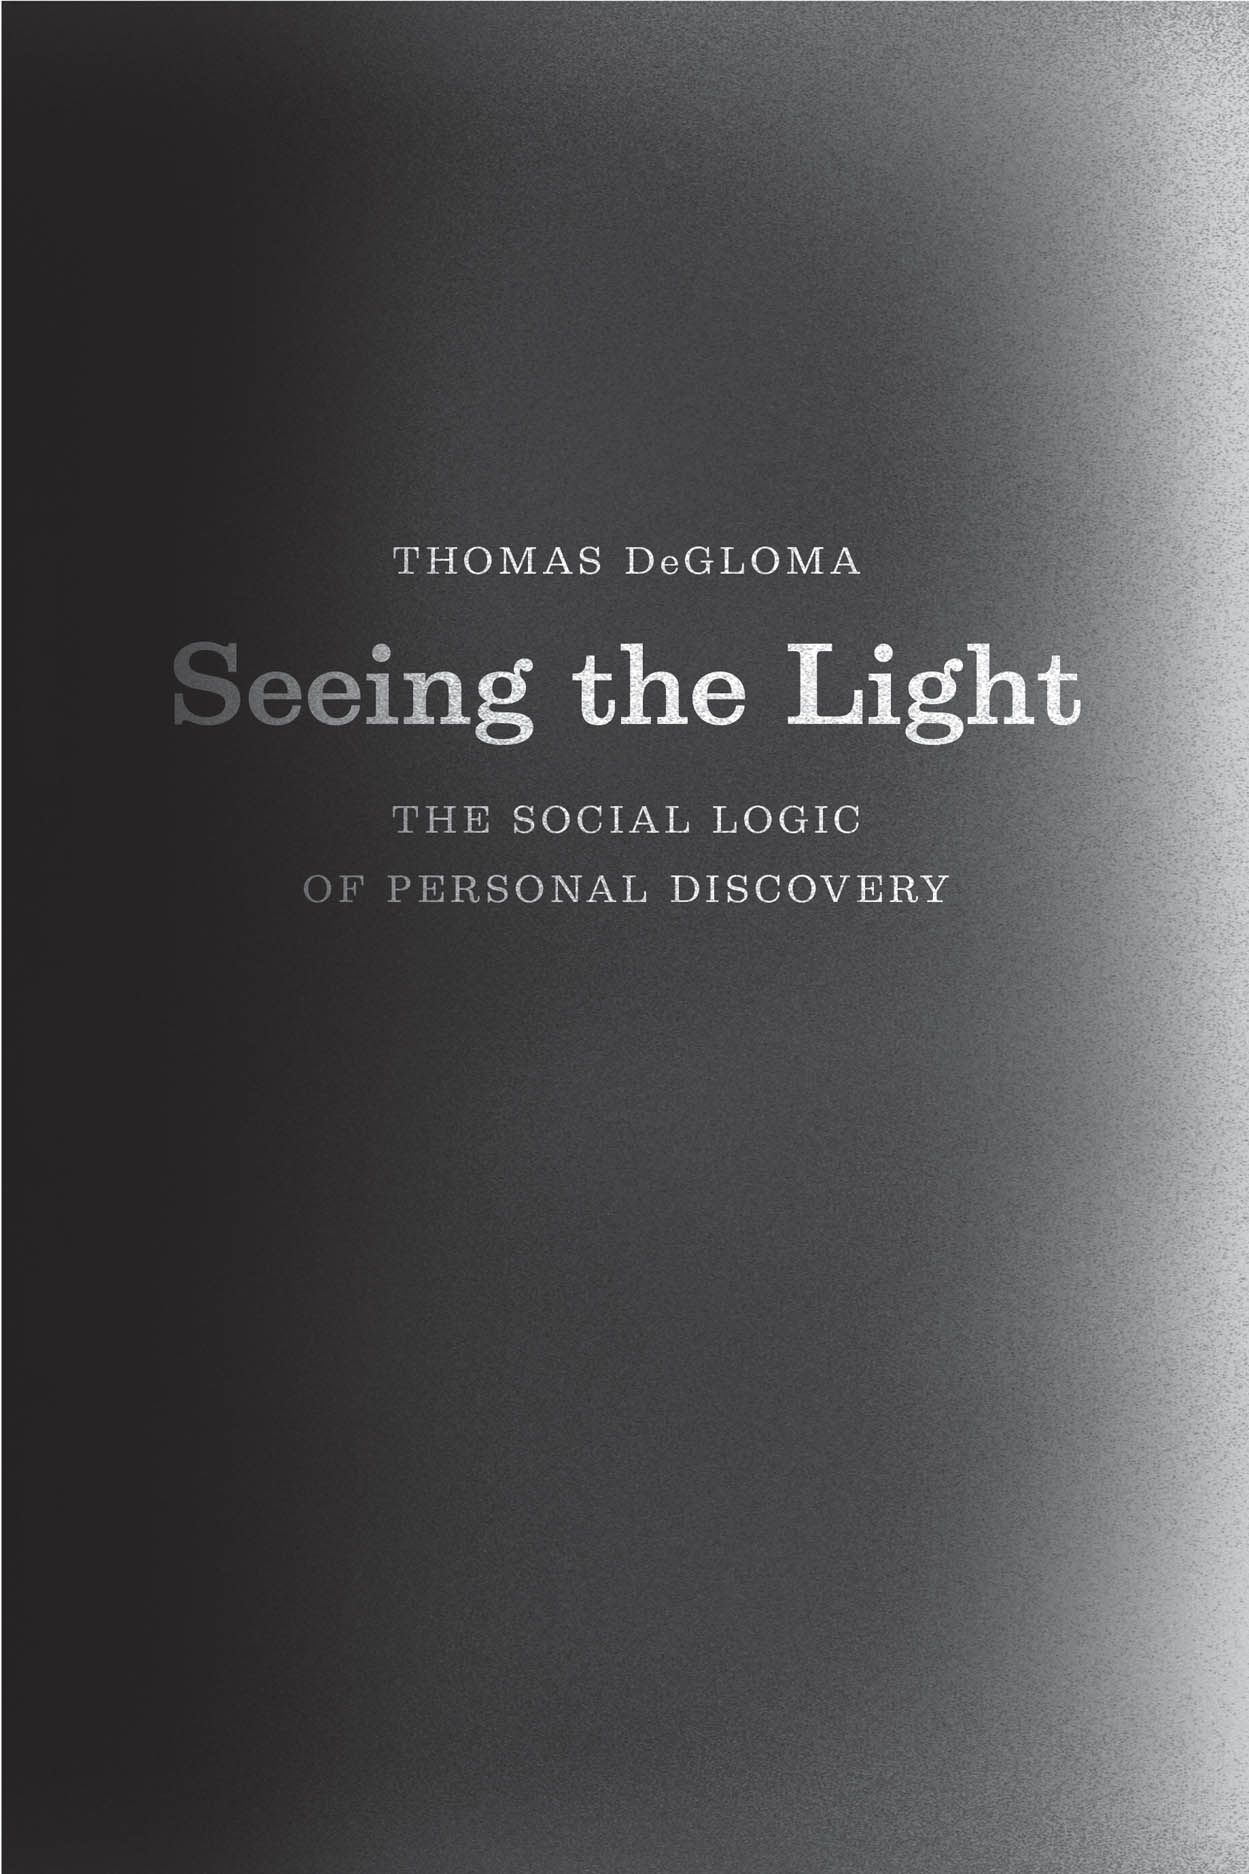 Seeing the Light: The Social Logic of Personal Discovery